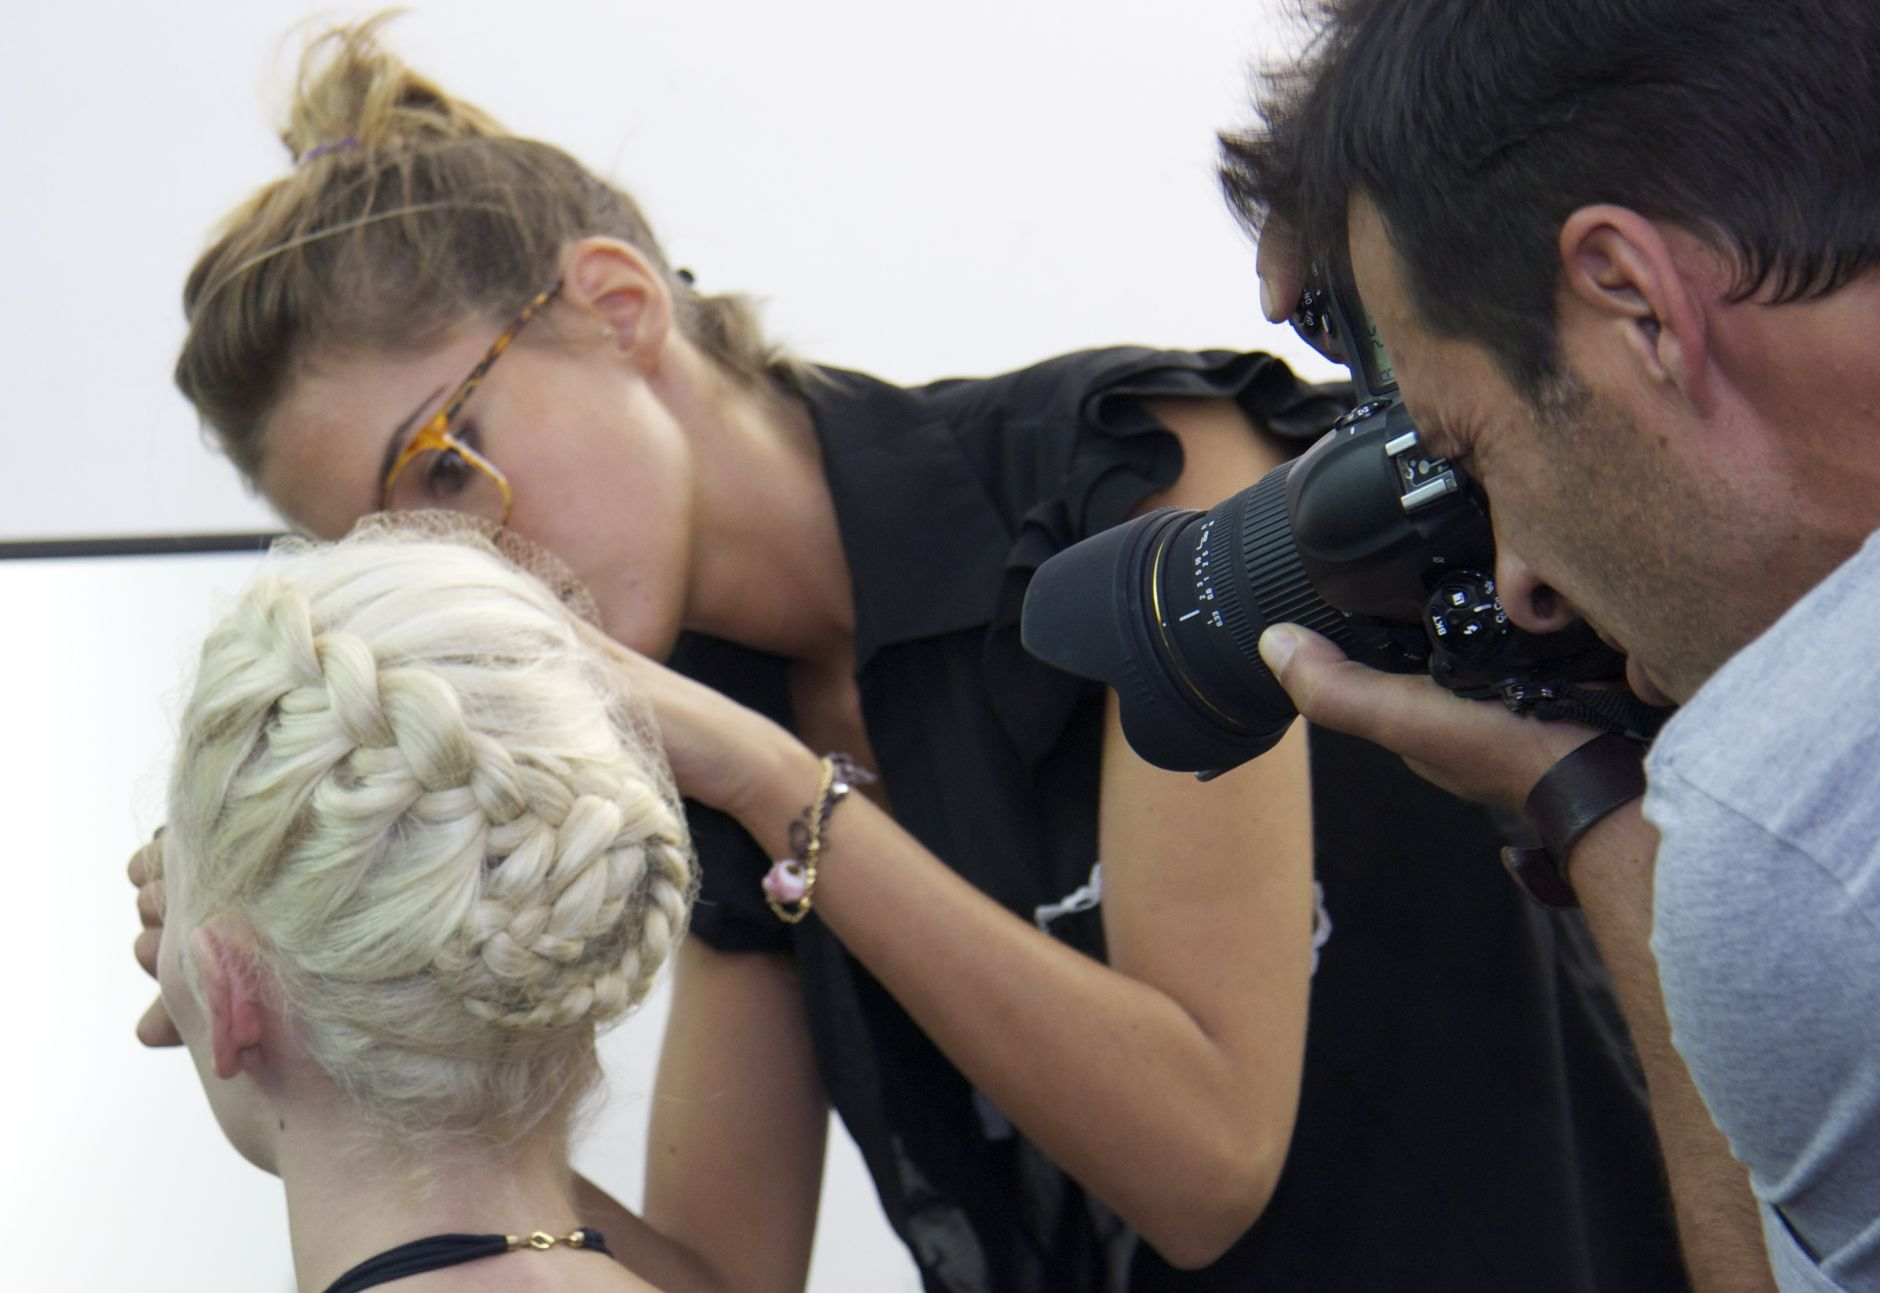 Backstage Jo No Fui Spring Summer 2013 Women Collection Milano Fashion Week Fashion Show